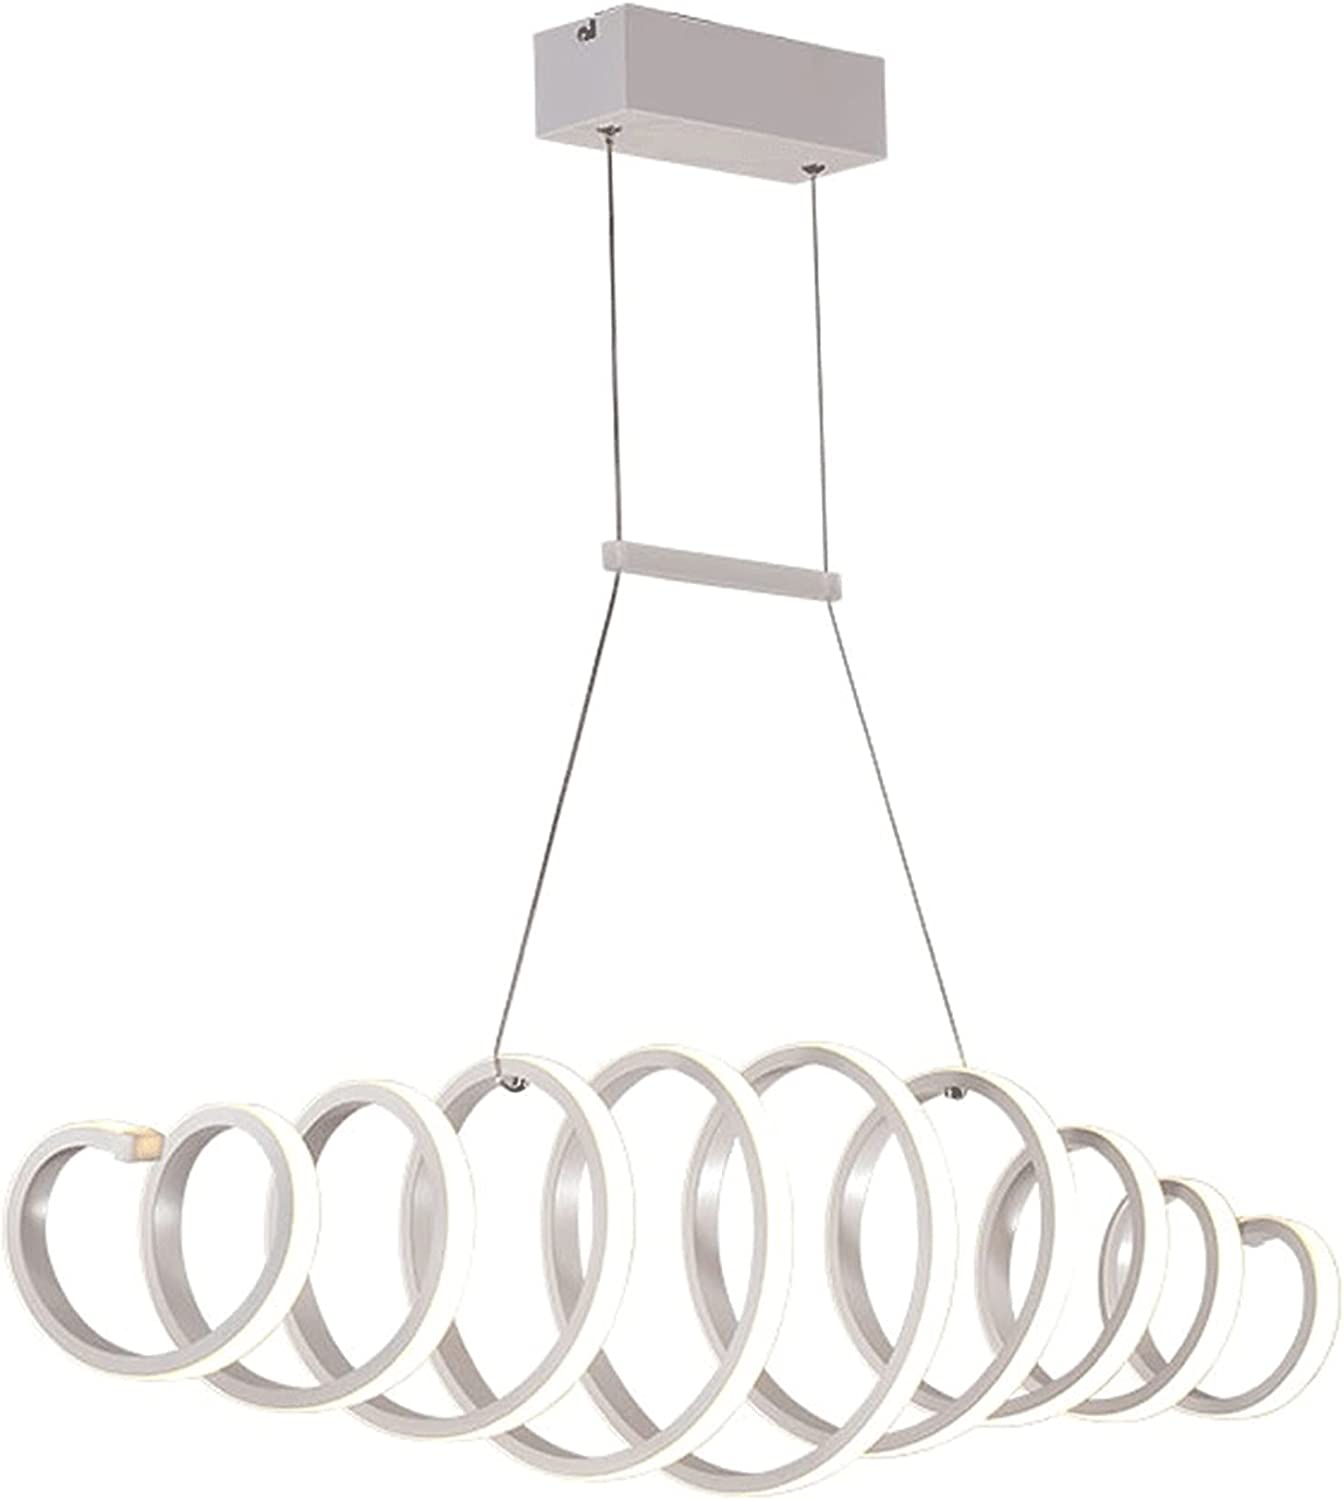 Chandelier Fixture Spin Dining Table D Oklahoma City Mall Brand Cheap Sale Venue Room Lamp LED